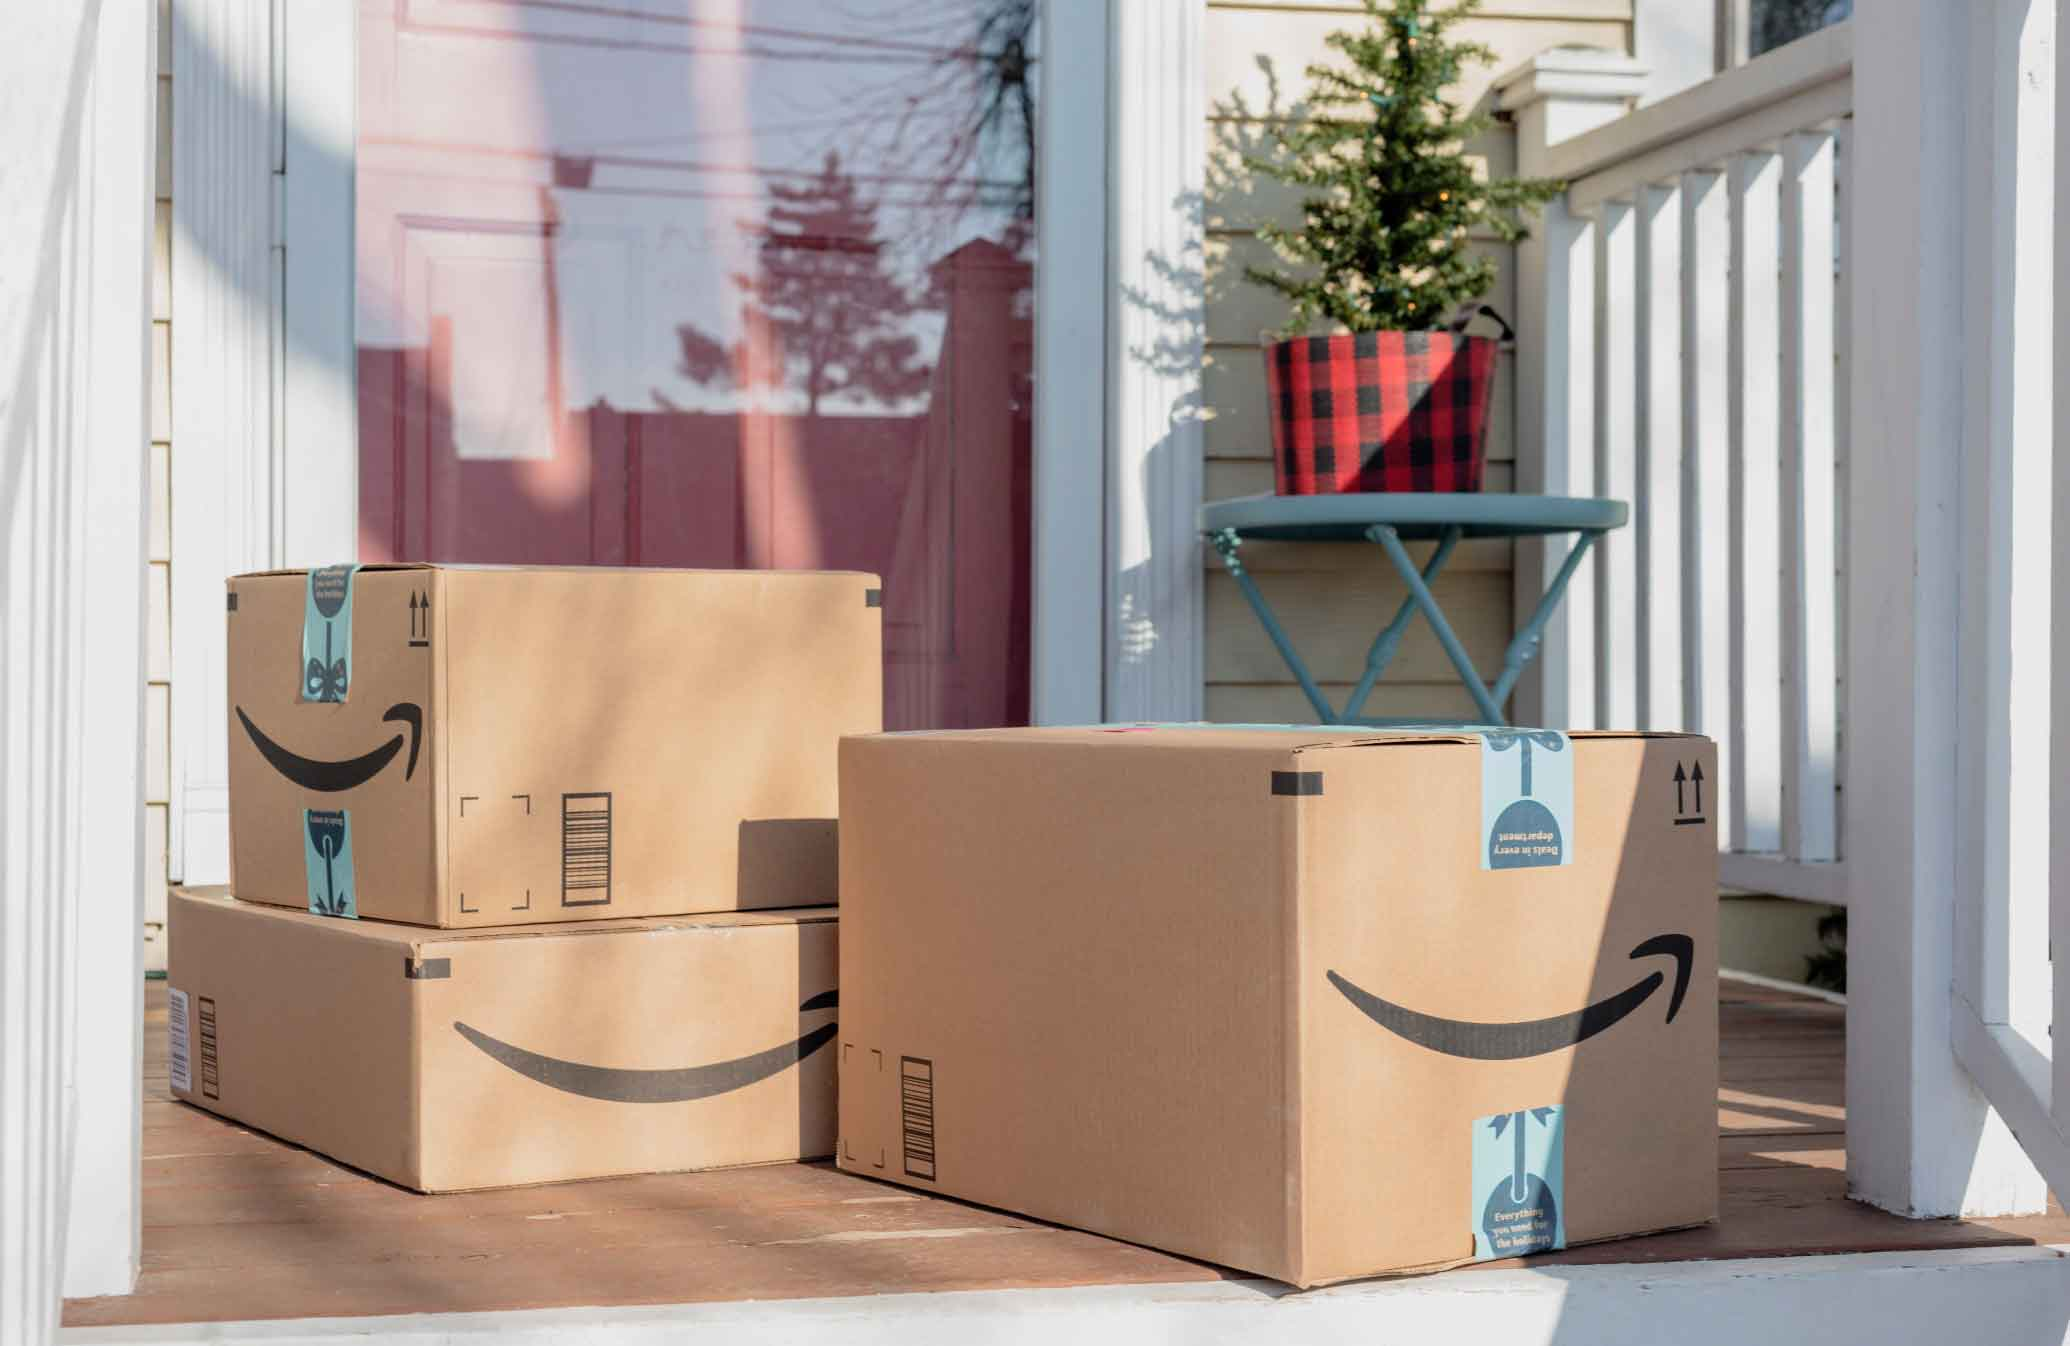 Amazon Effect will Disrupt Health Engagement